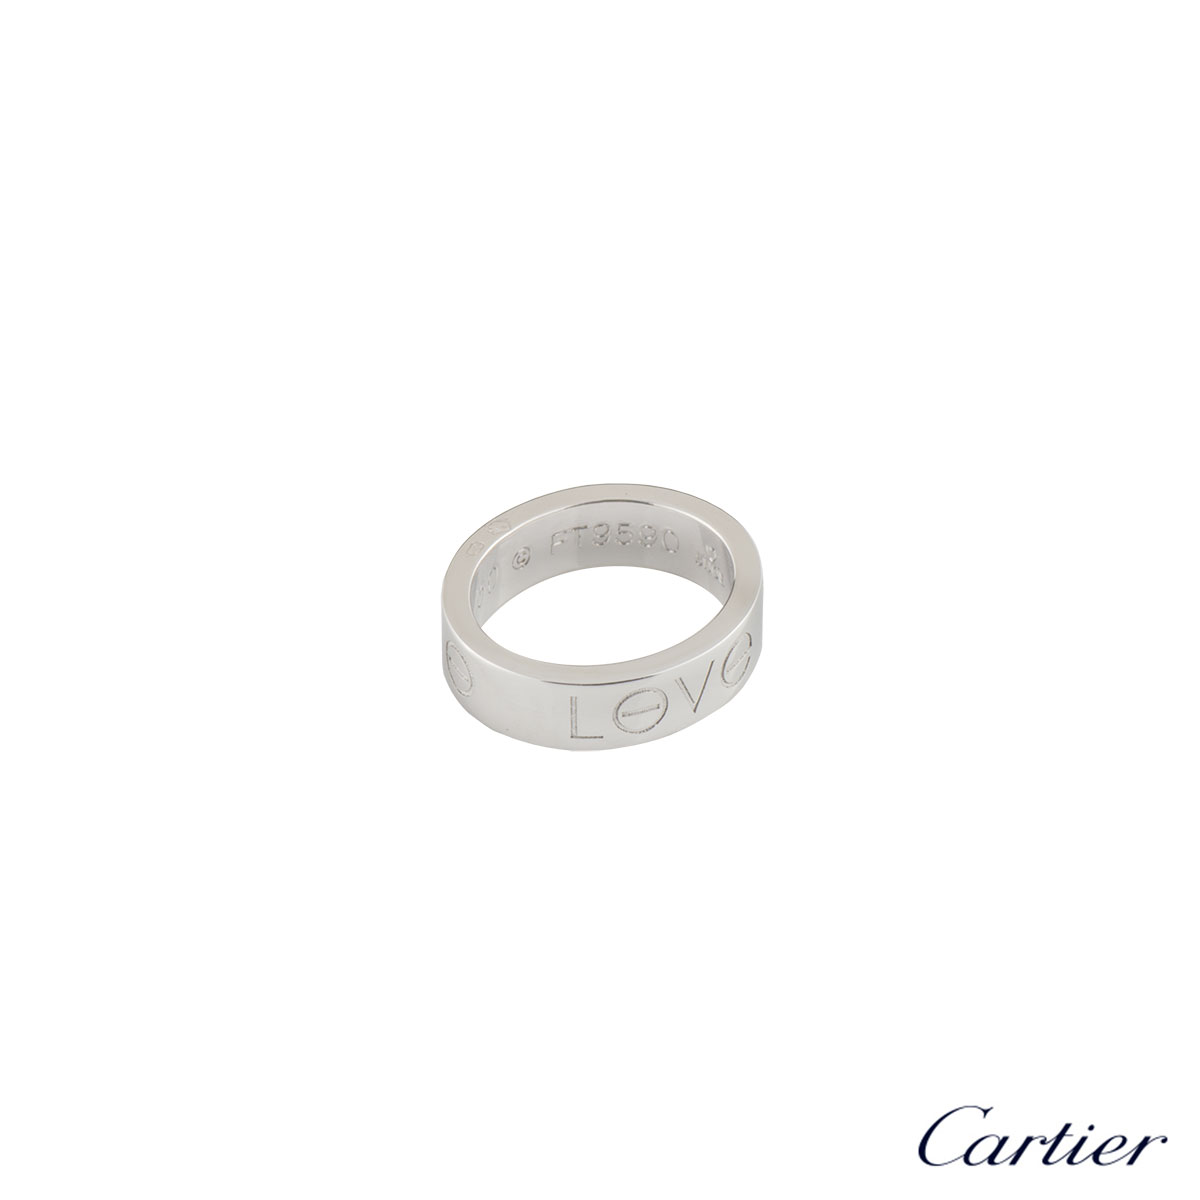 Cartier White Gold Love Charm